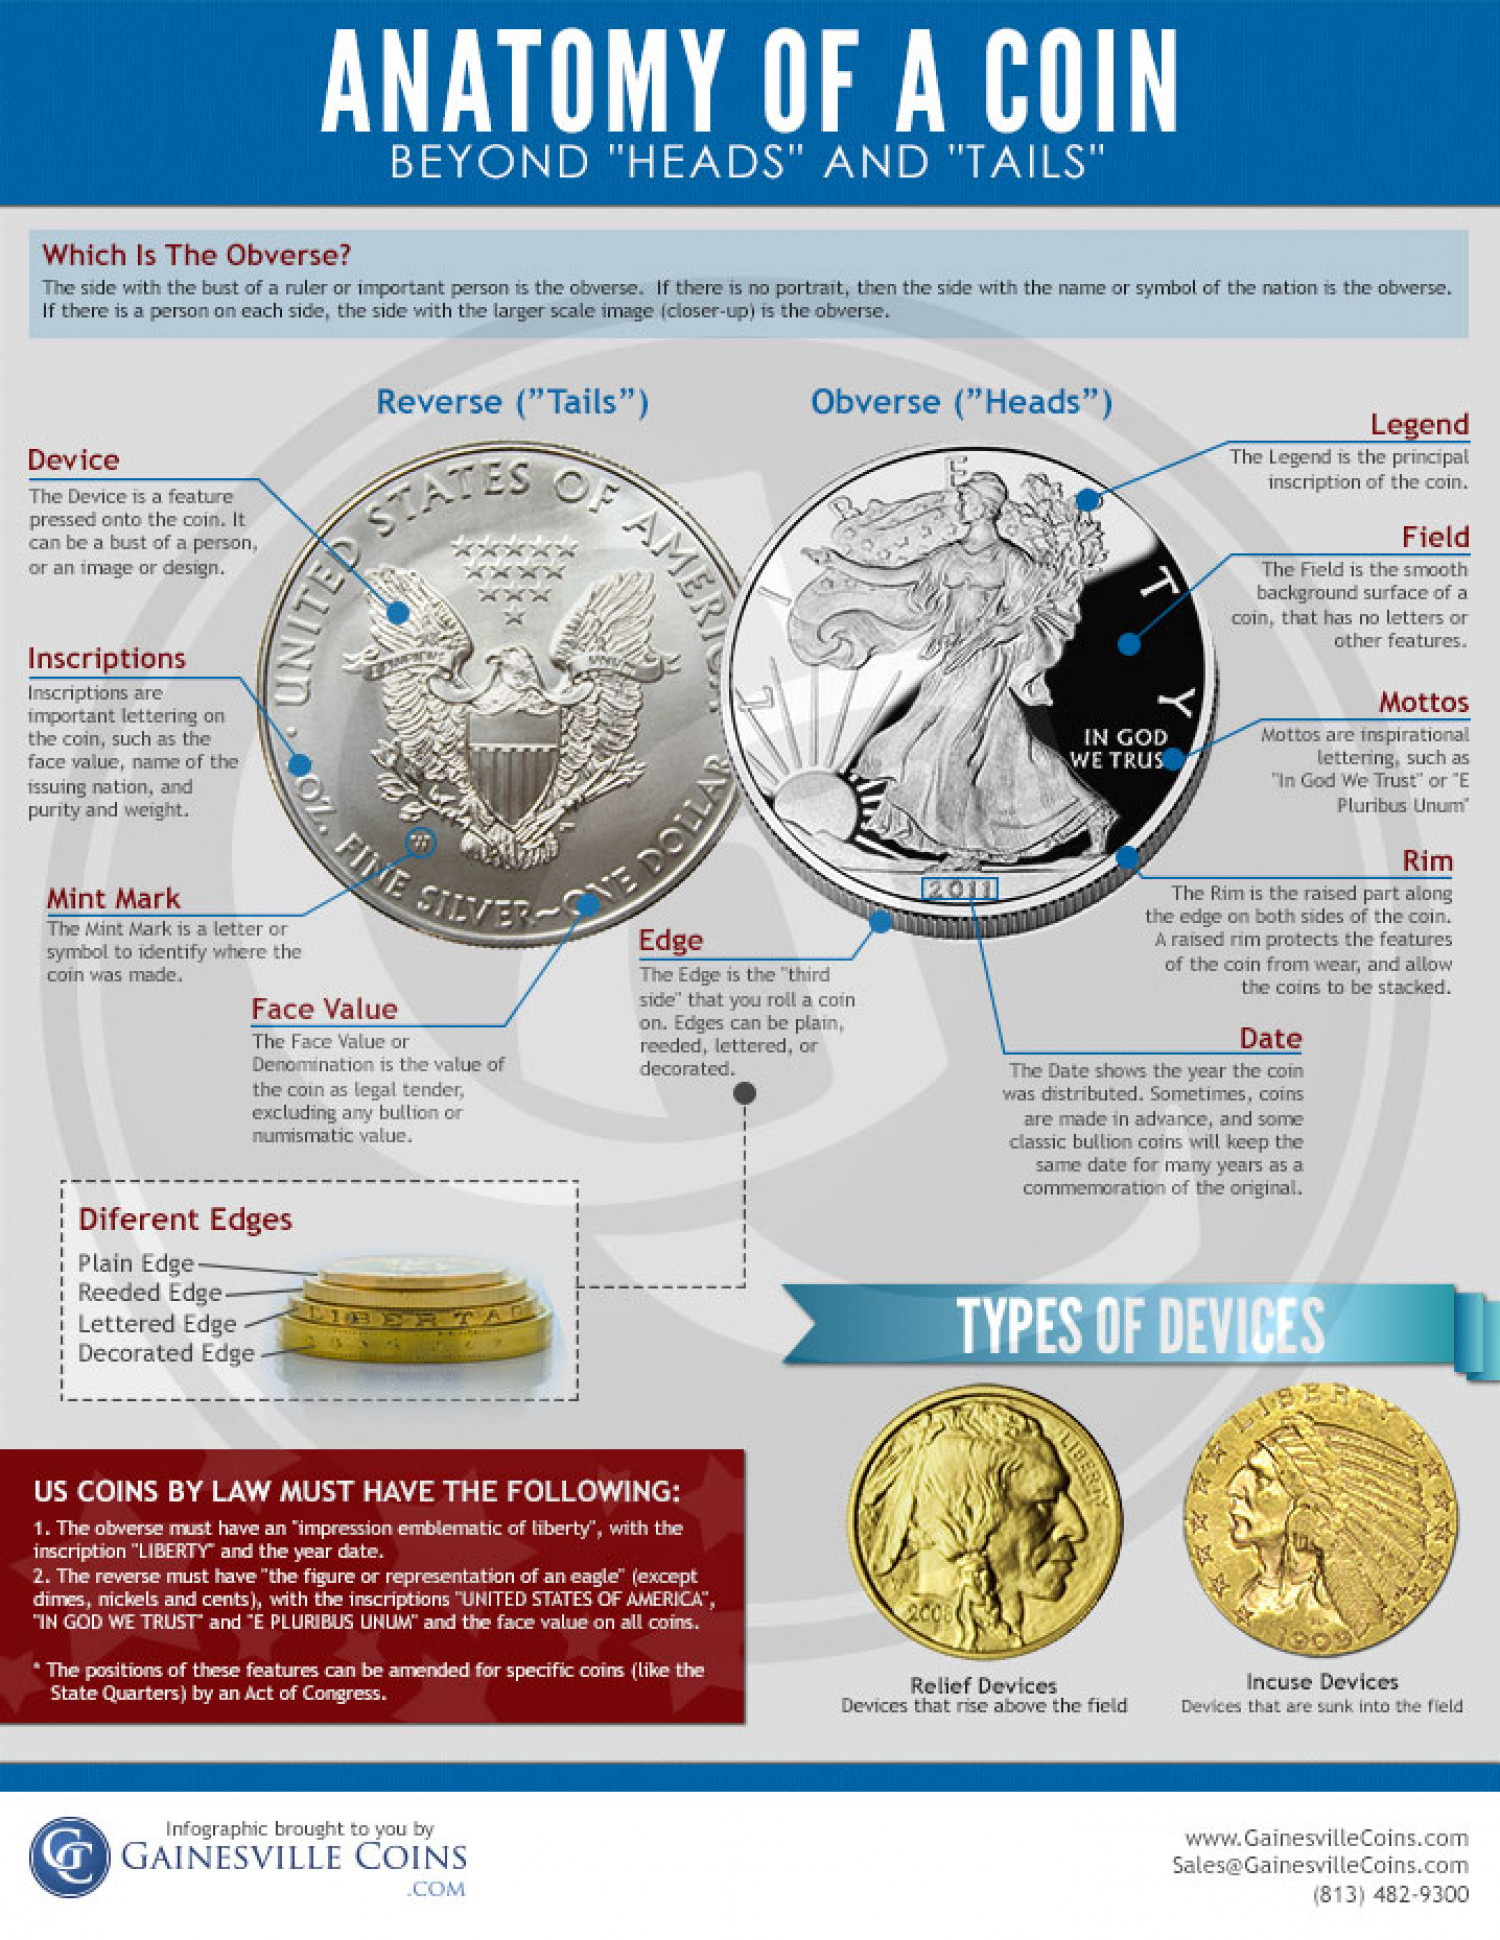 Anatomy of a Coin: Beyond Heads and Tails  Infographic